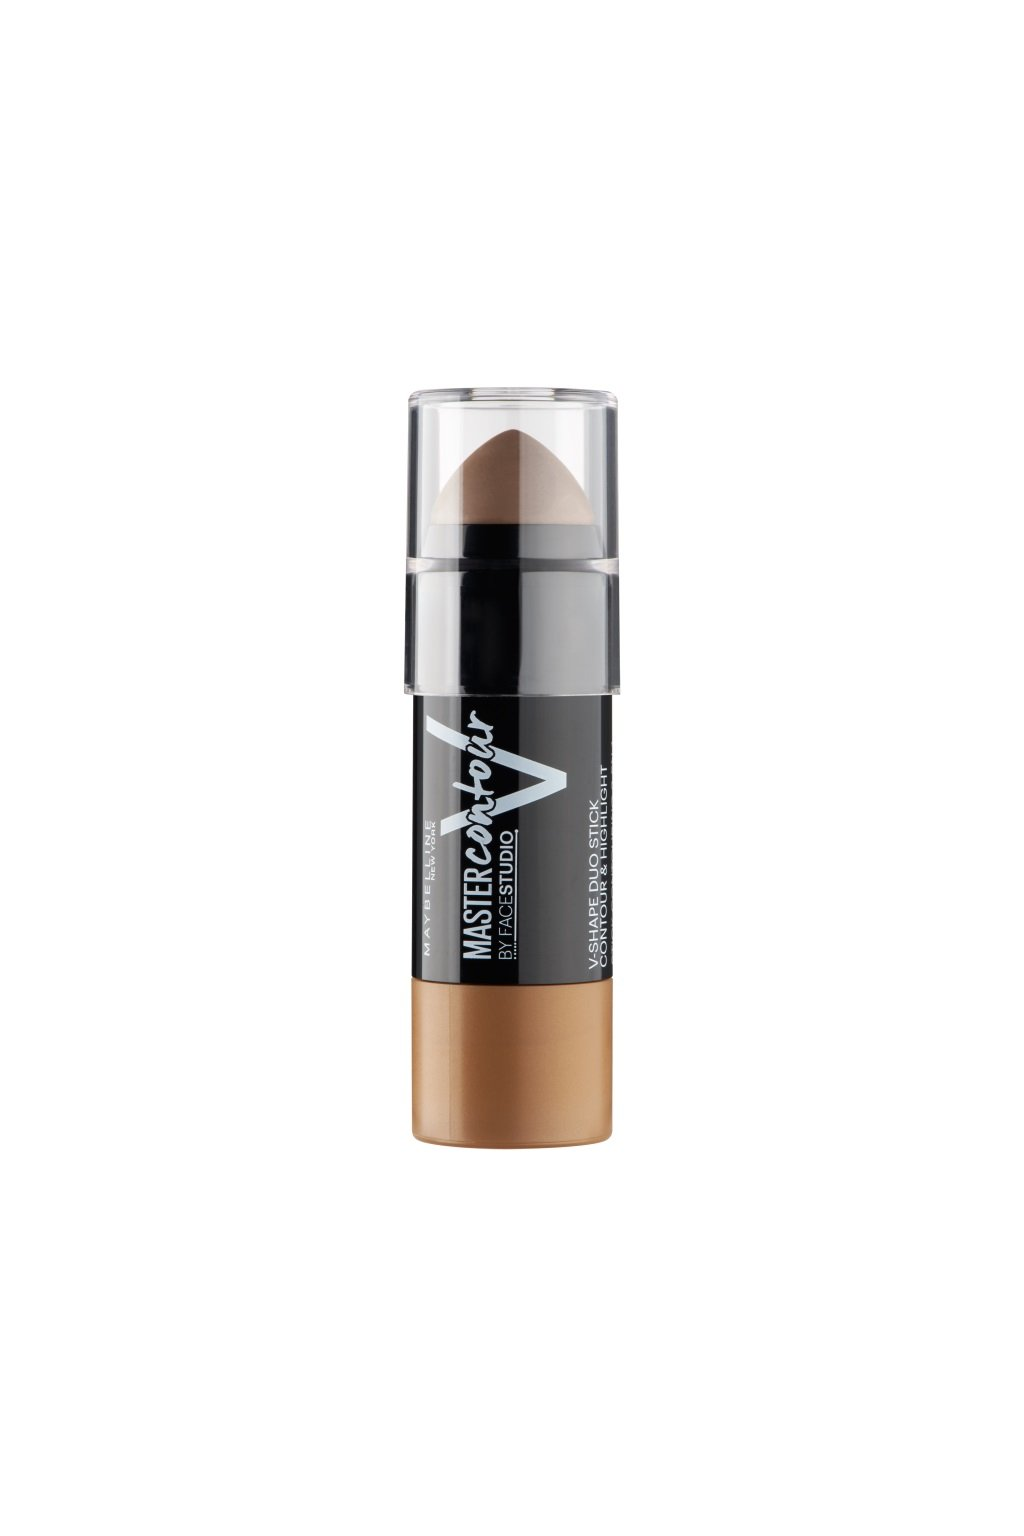 maybelline strobbing stick light